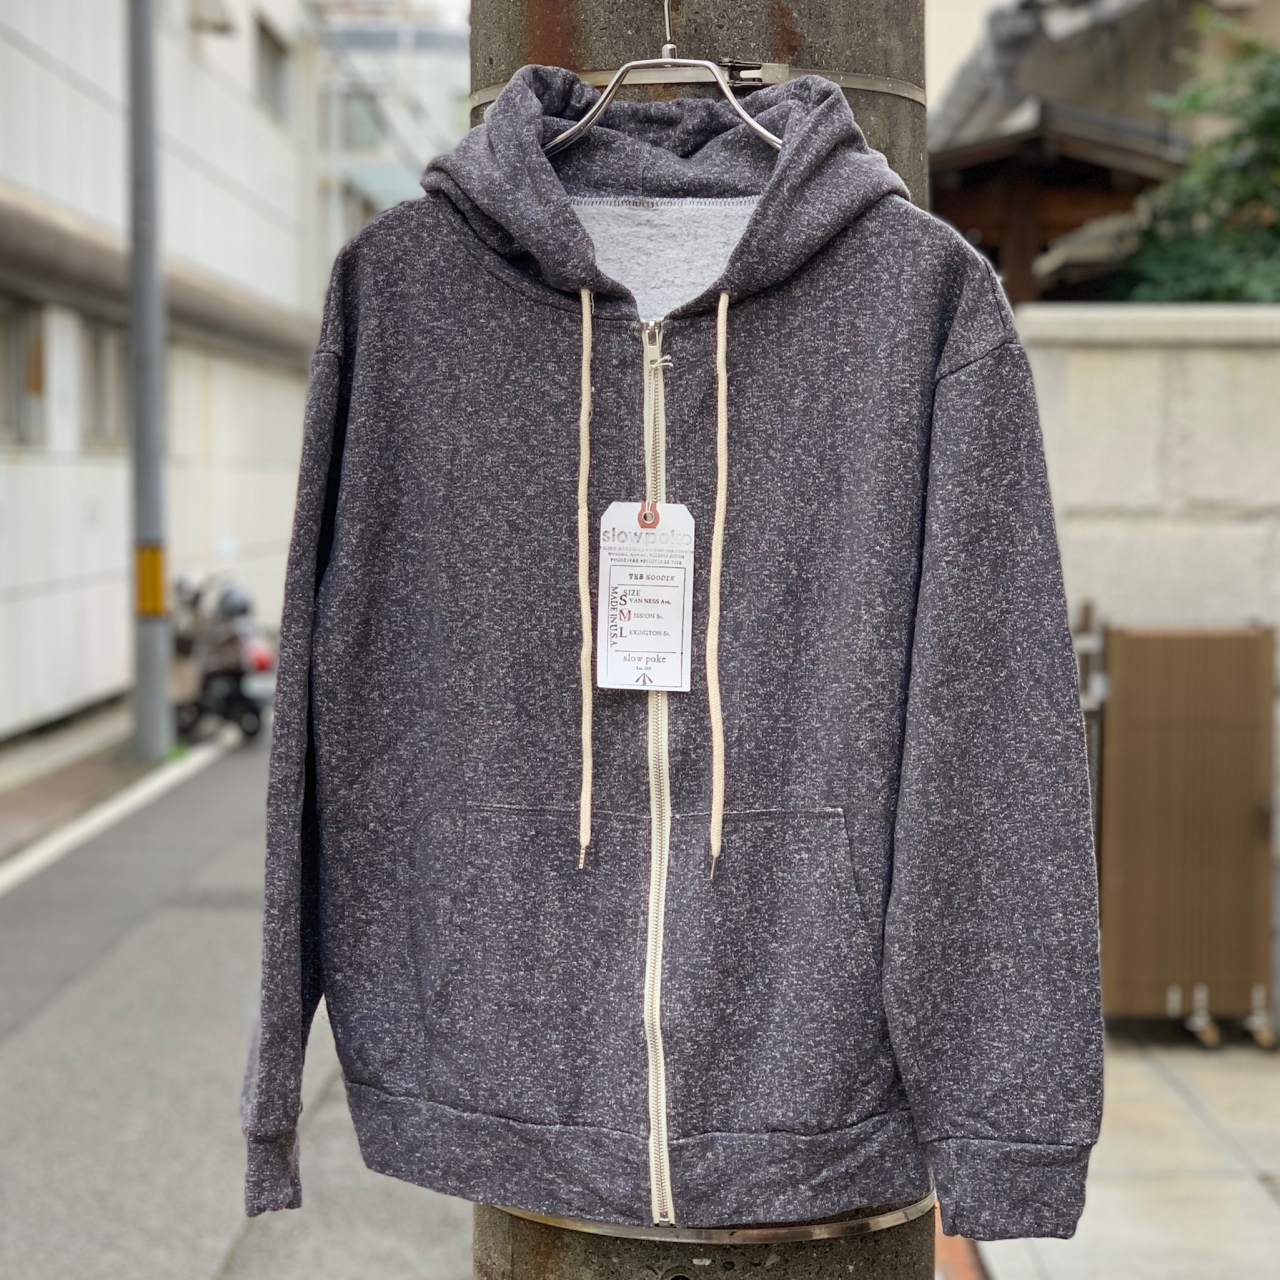 THE CITY FABRICATION - THE HOODIE  -